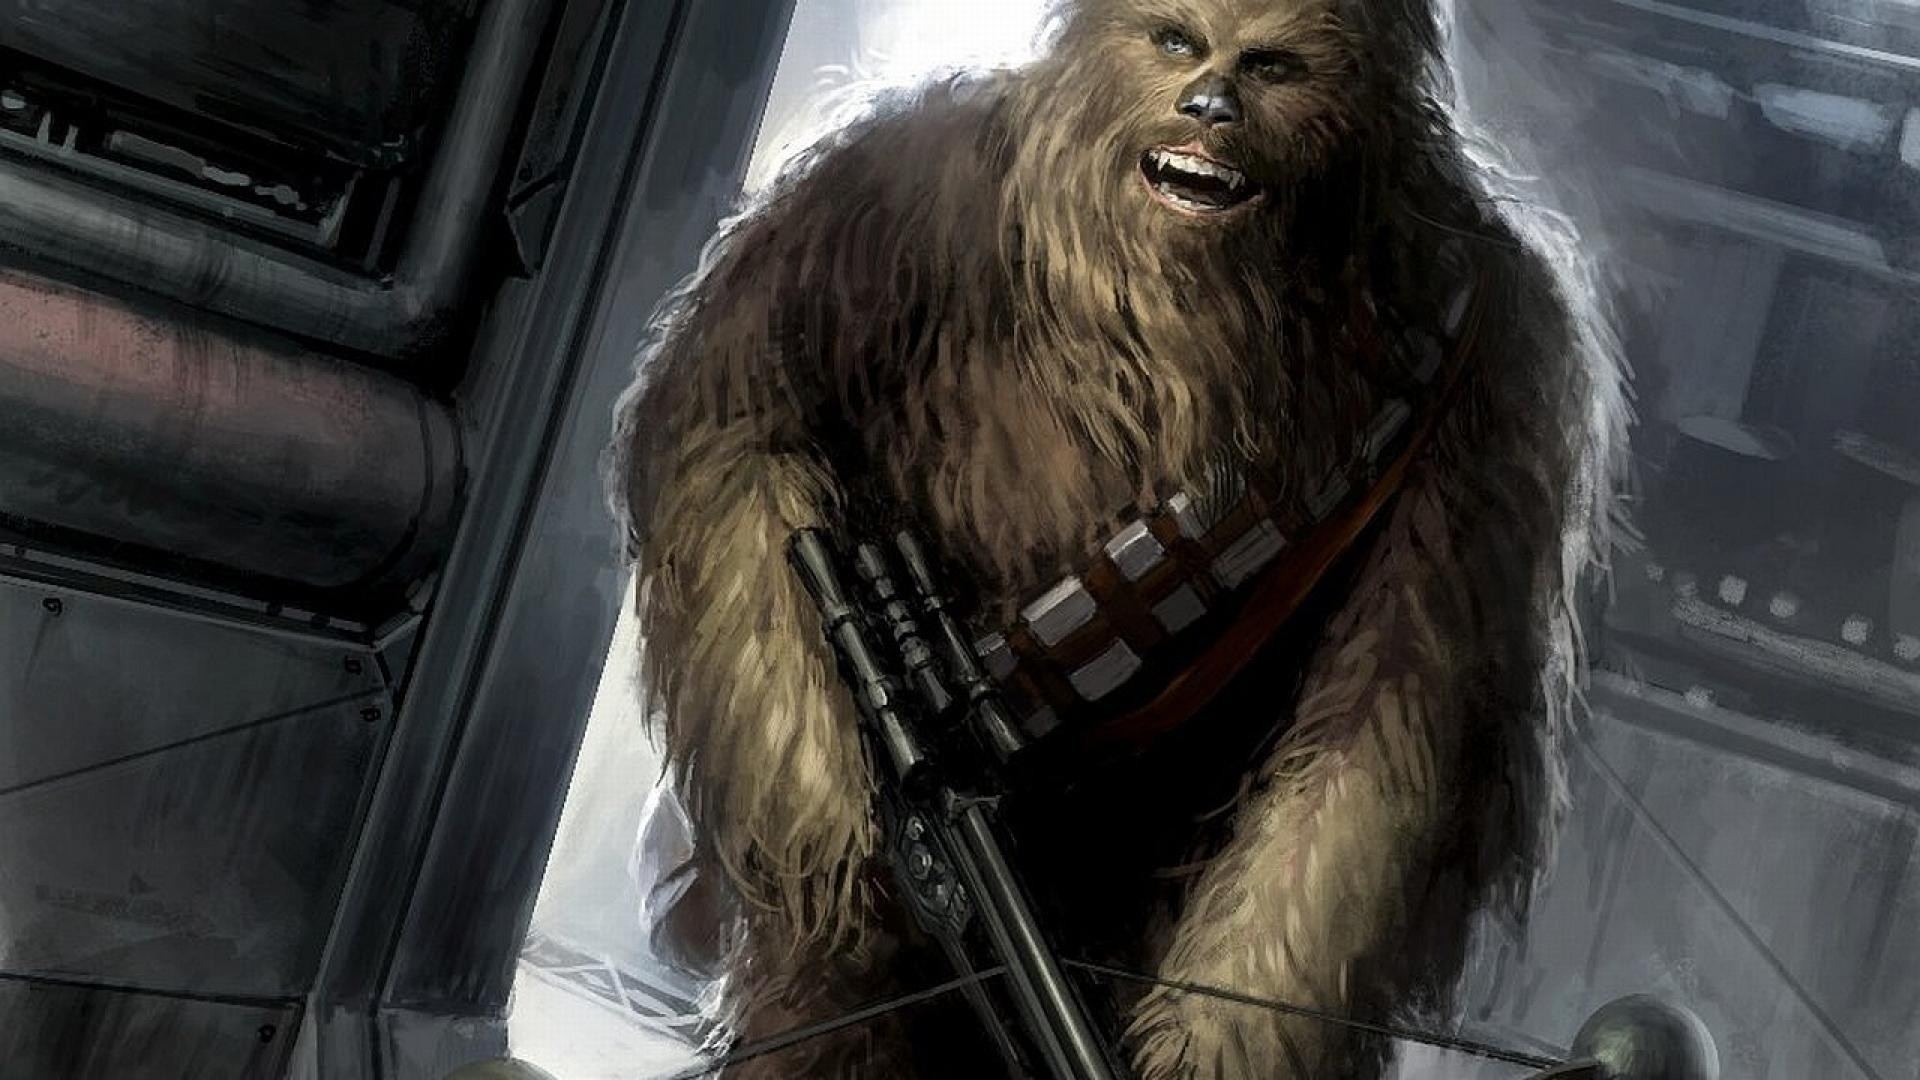 1920x1080 Title : star wars chewbacca artwork wallpaper | (124760) Dimension : 1920 x  1080. File Type : JPG/JPEG